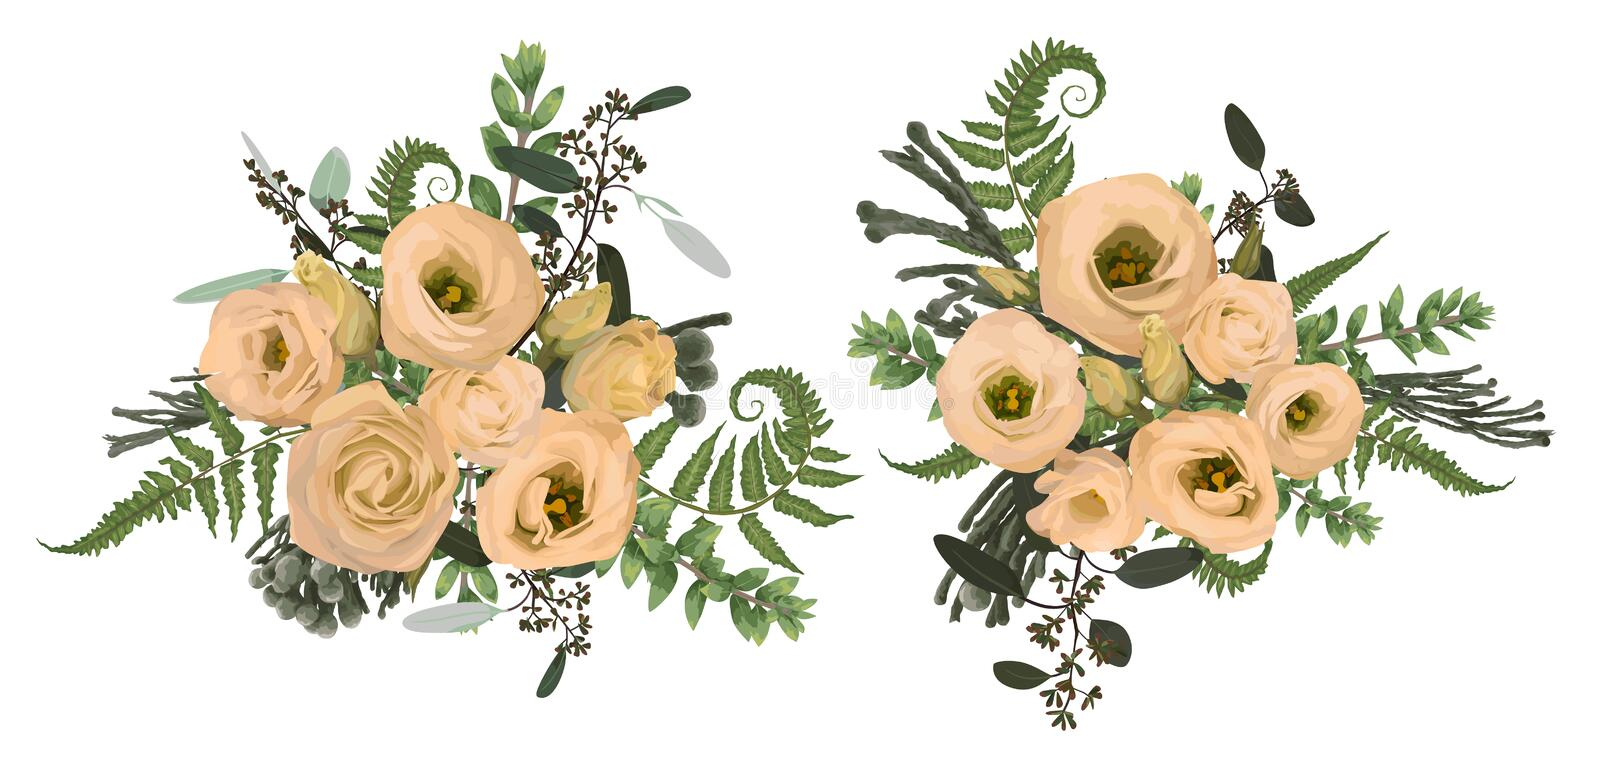 Vector floral bouquet design set, green forest leaf, brunia, fern, branches boxwood, buxus, eucalyptus and flowers eustoma cream. Watercolor style, herbs vector illustration